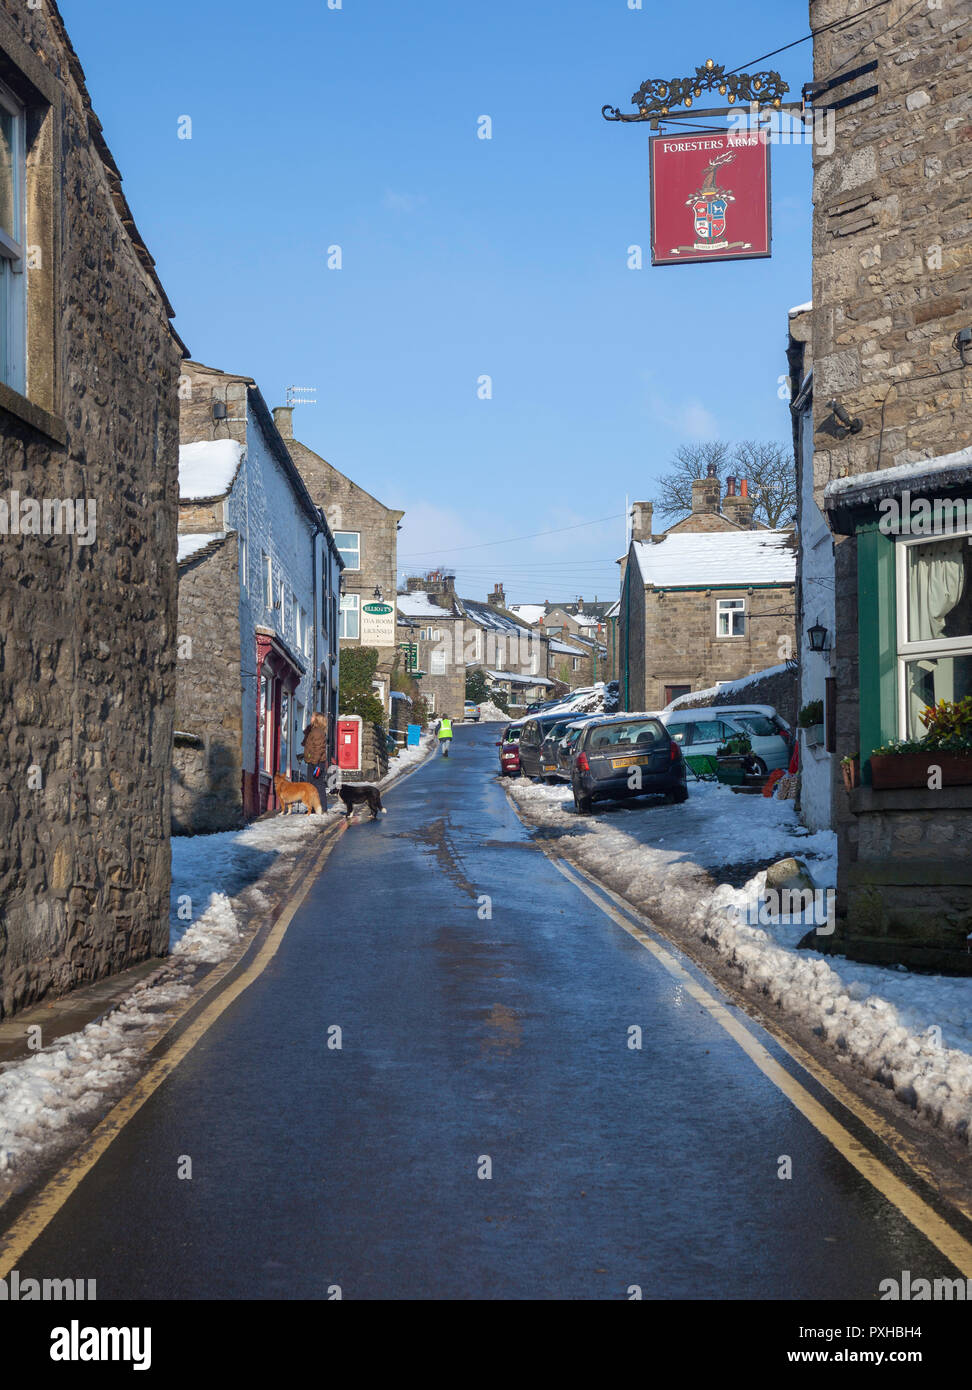 Winter view of Main Street in Grassington, North Yorkshire after snow Stock Photo